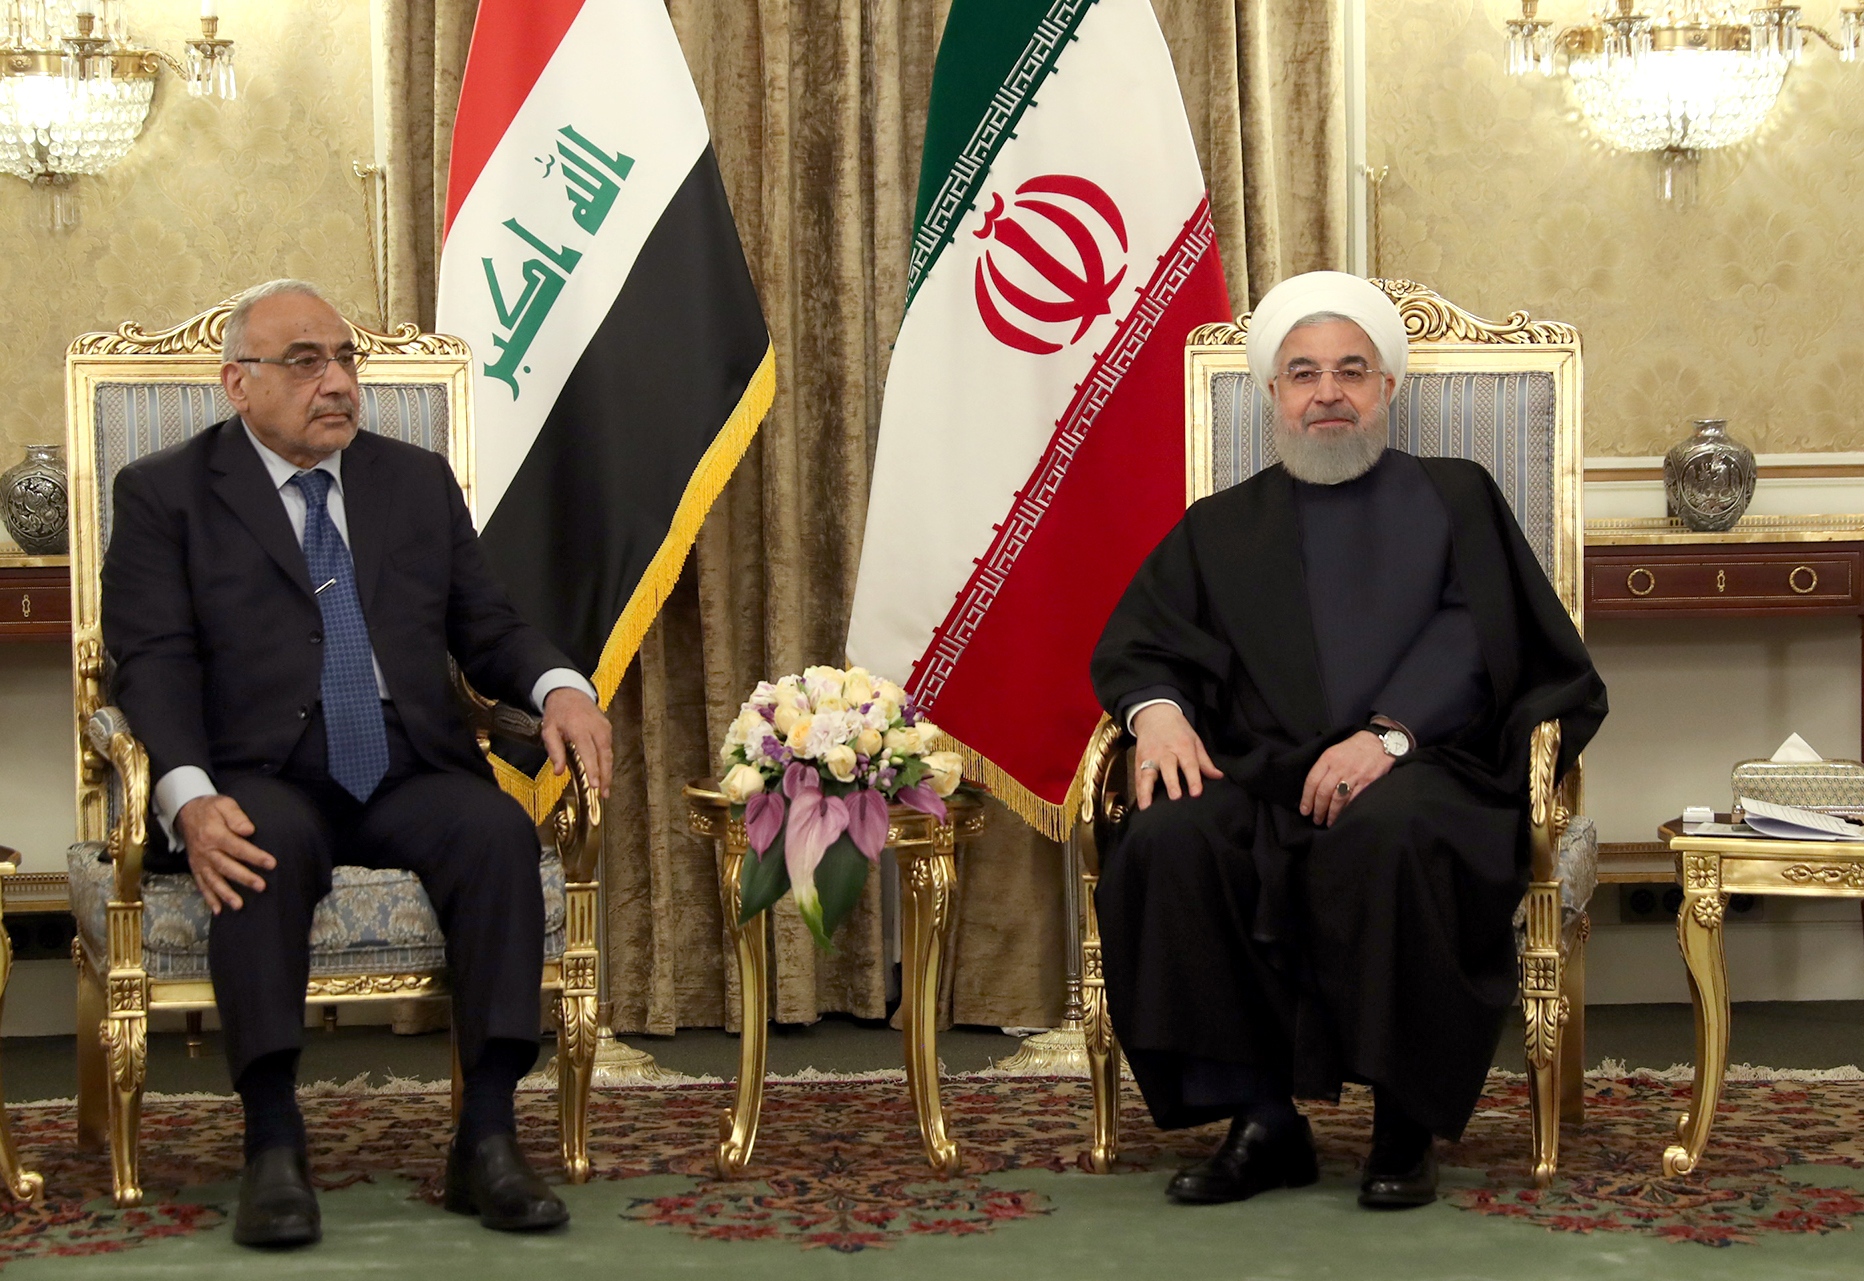 A handout picture provided by the Iranian presidency on April 6, 2019 shows Iranian President Hassan Rouhani (R) meeting with Iraqi Prime Minister Adel Abdel Mahdi in the Iranian capital Tehran (AFP)